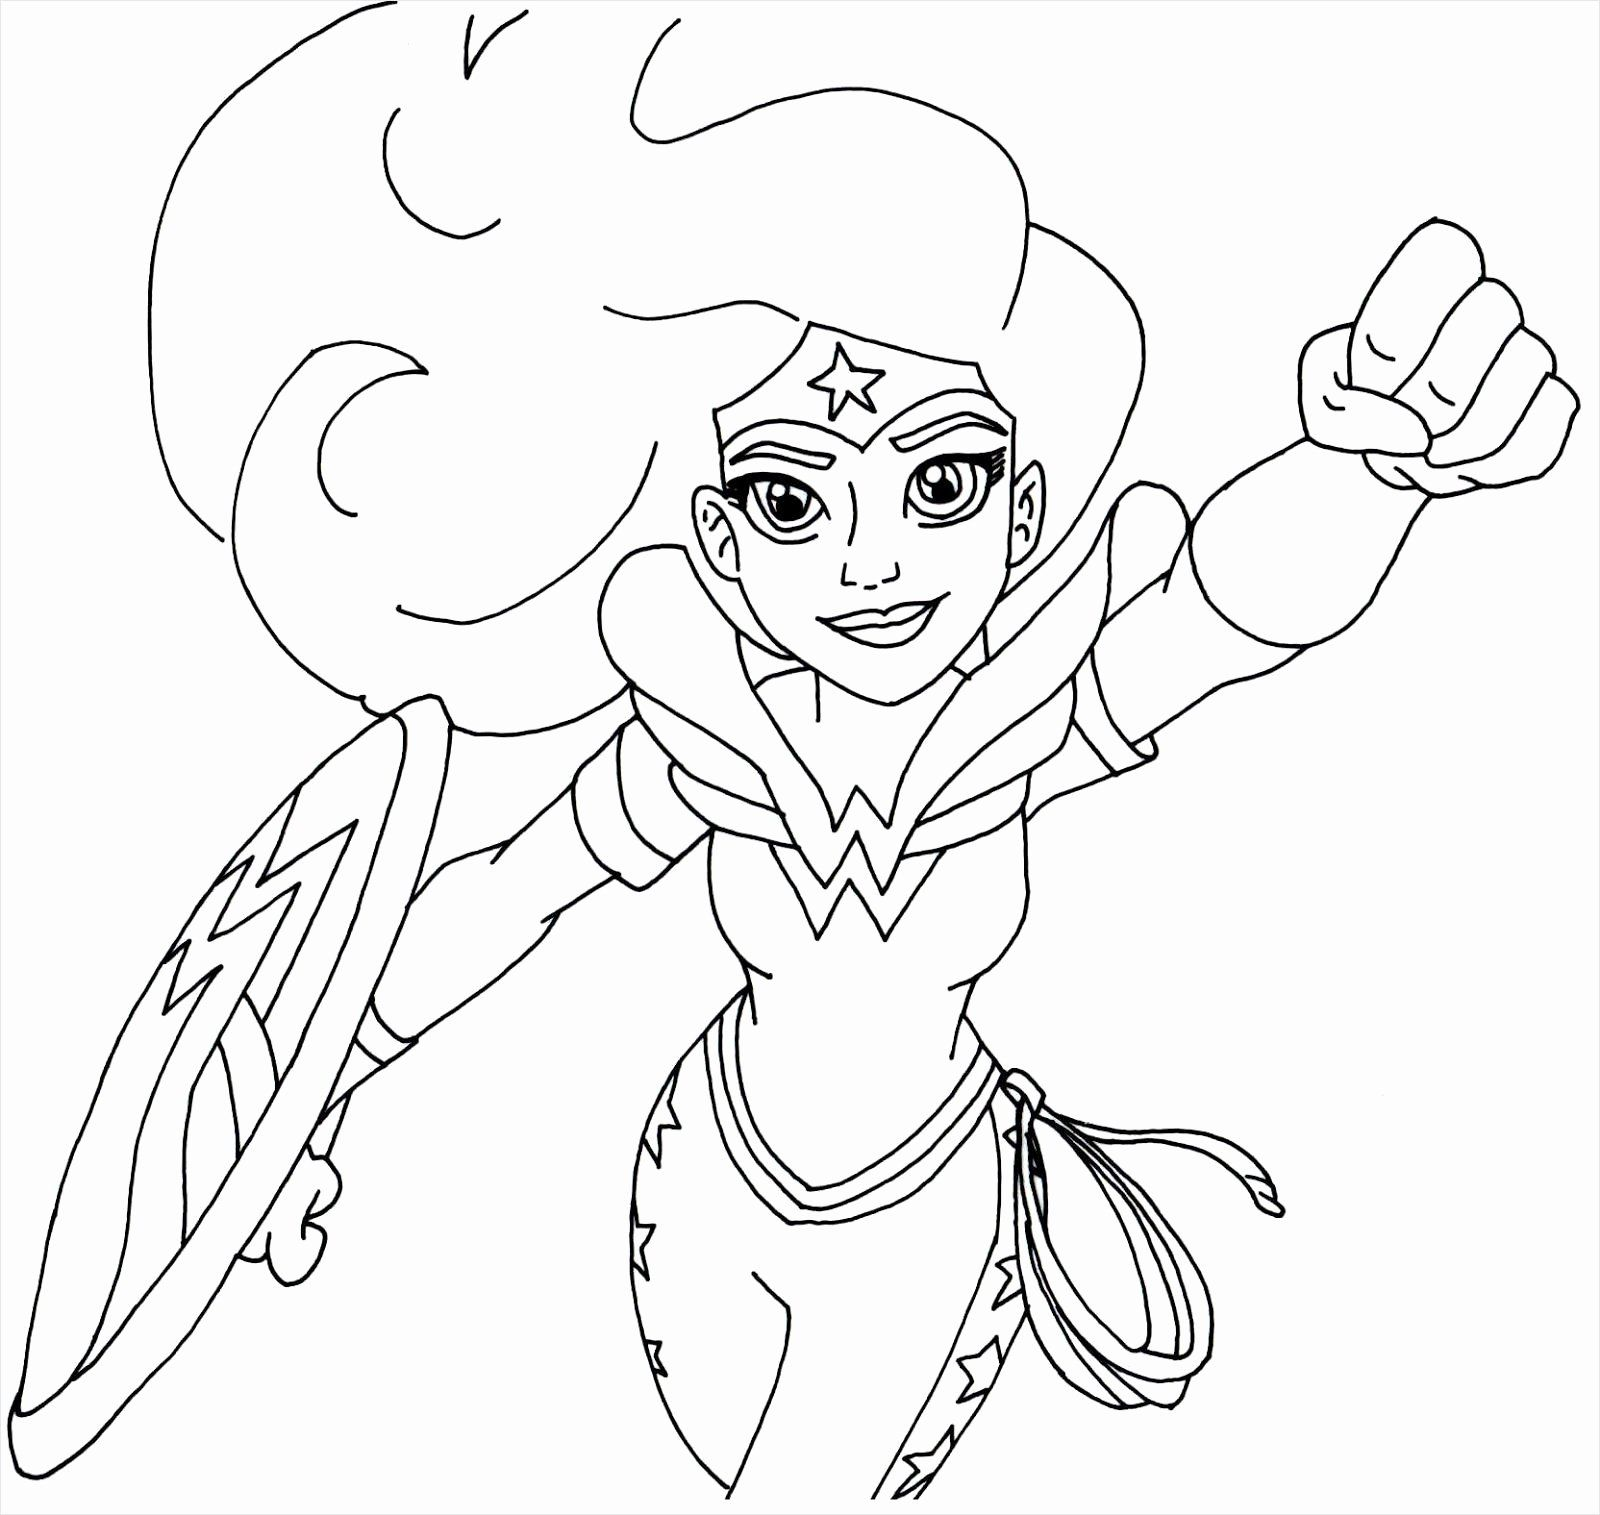 All The Coloring Games Fresh Line Coloring Book For Kids Unique Batman Coloring Pages Superhero Coloring Superhero Coloring Pages Mermaid Coloring Pages